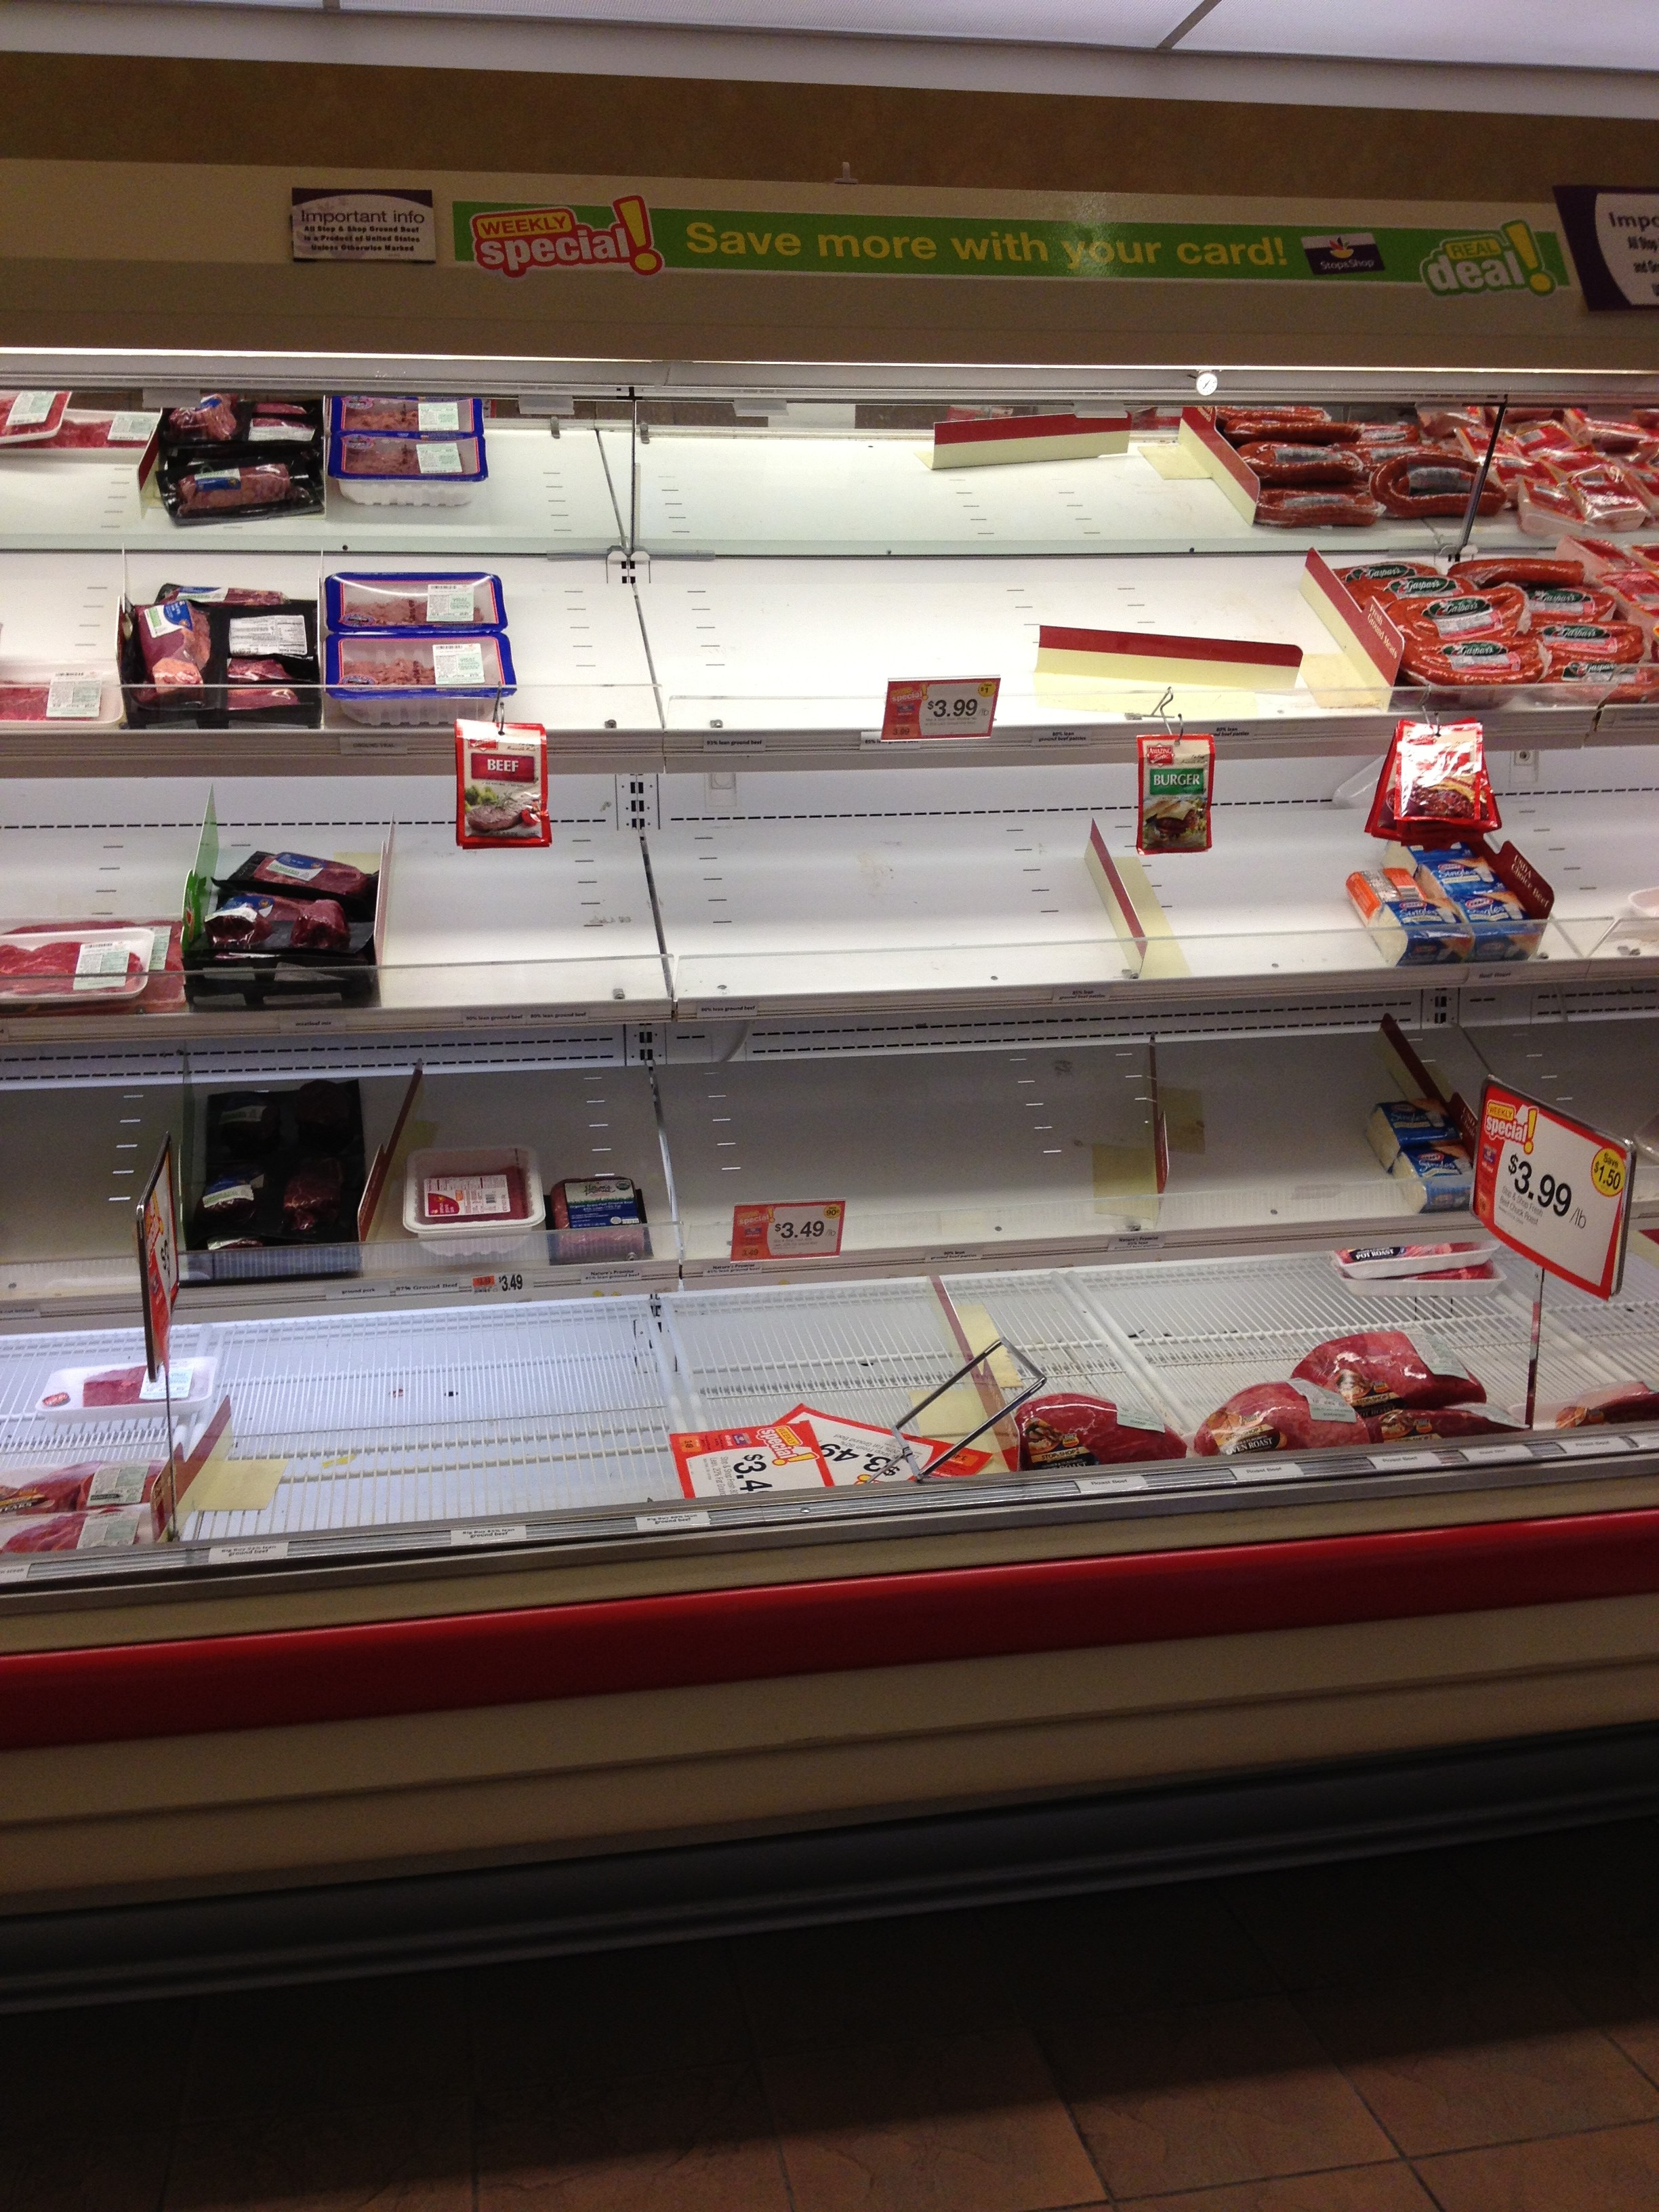 Shoppers stocked up on meat in preparation for Nemo. Photo by Chelsea Hirsch.